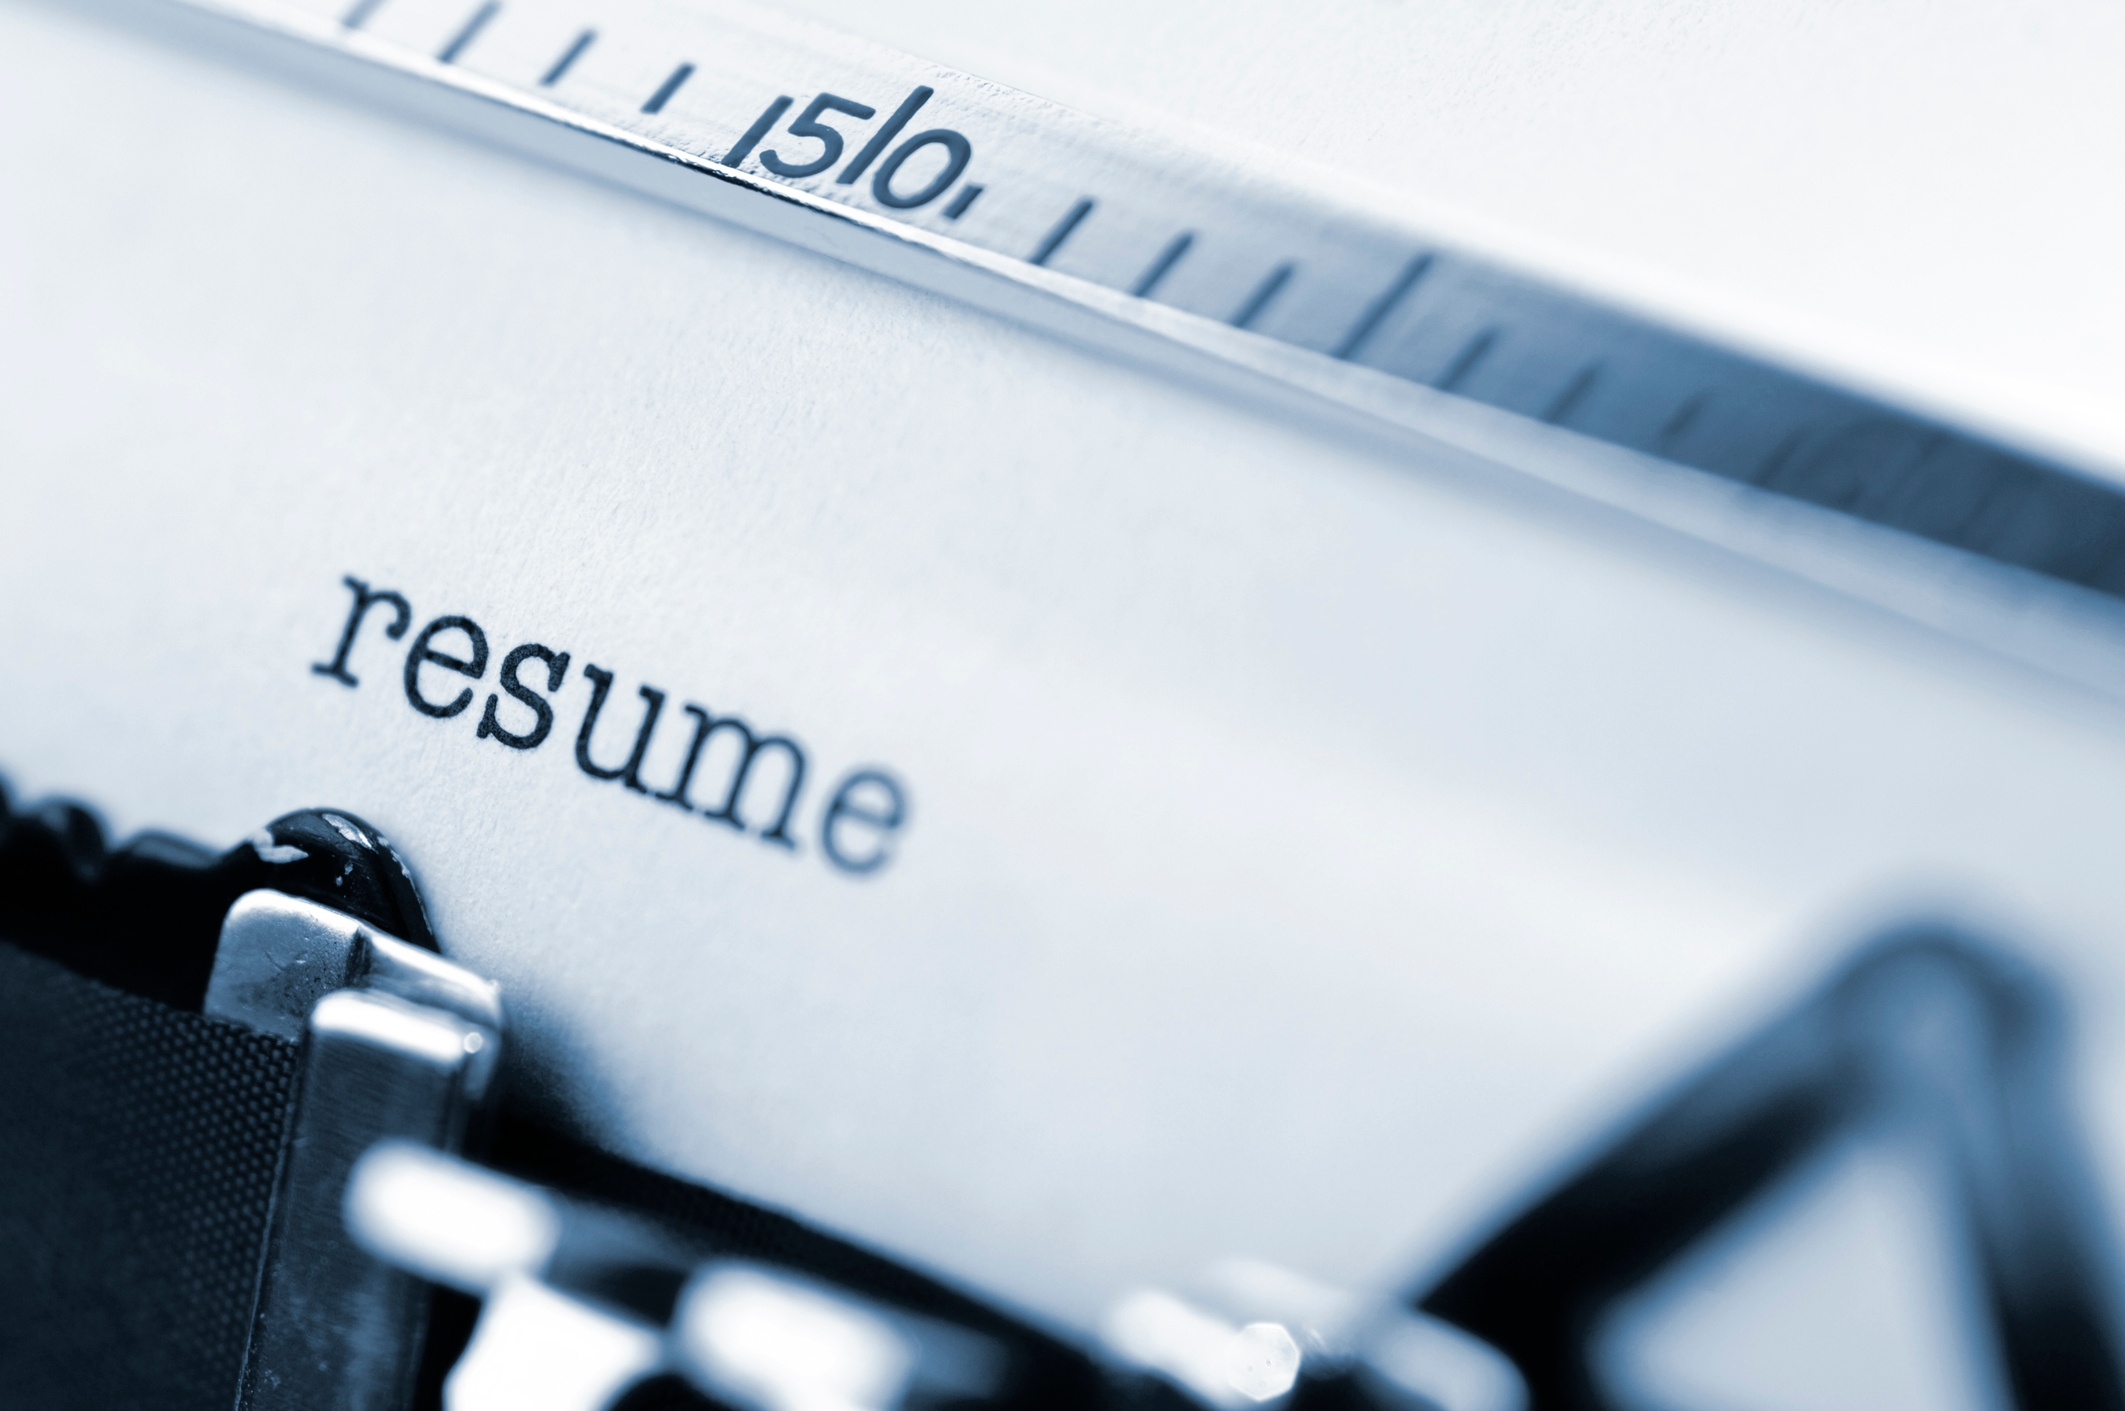 Changing Careers? 7 Resume Writing Tips to Stand Out From the Pack